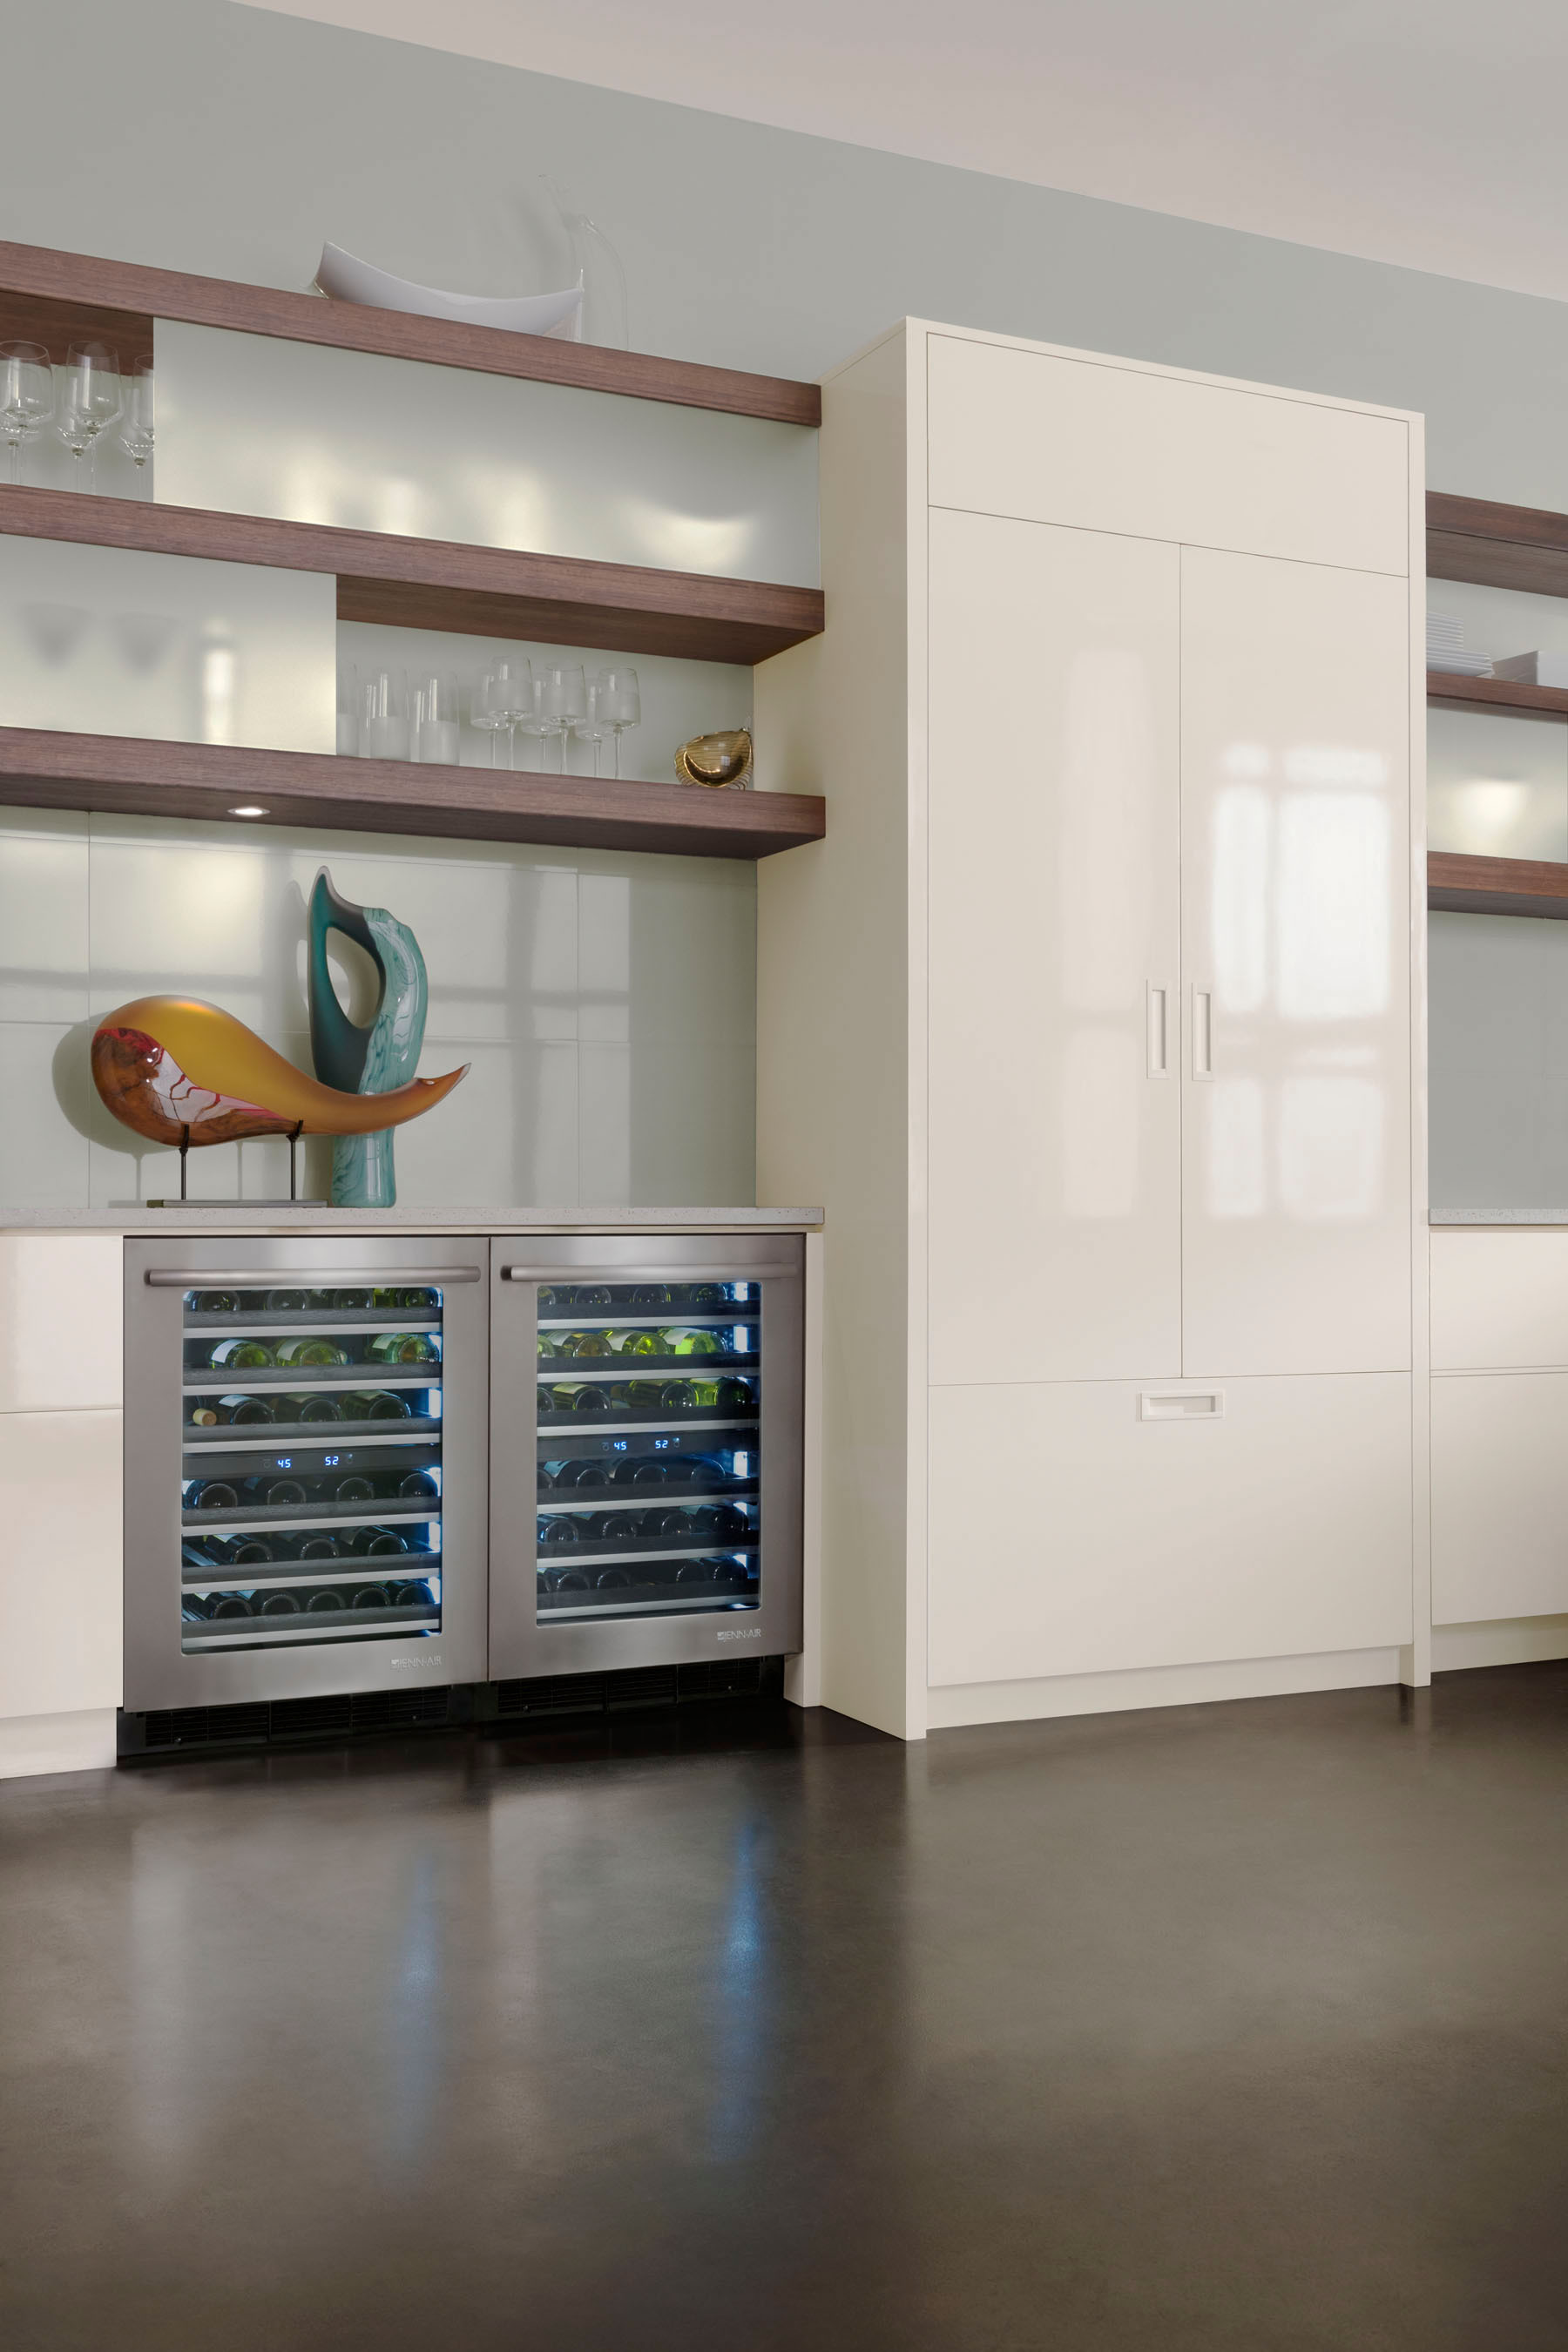 JENN-AIR WINE CELLAR & New Jenn-Air® Built-In Under Counter Refrigerator Collection: For ...